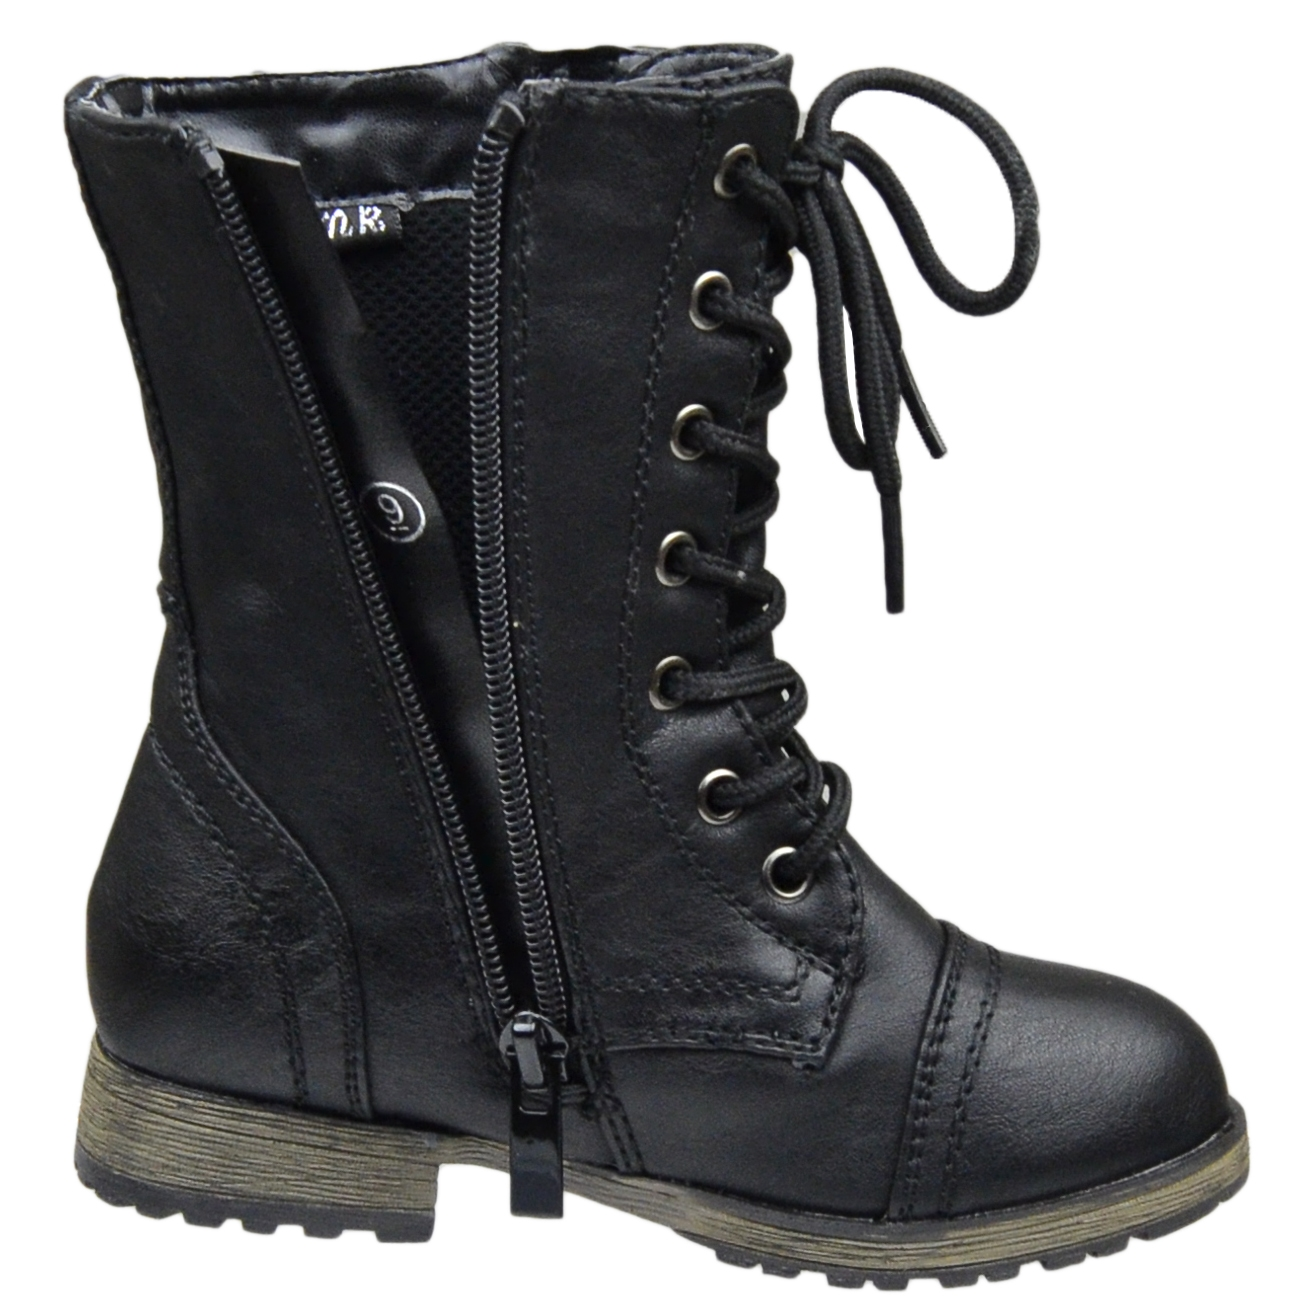 Combat Boots For Kids RM2MldrO